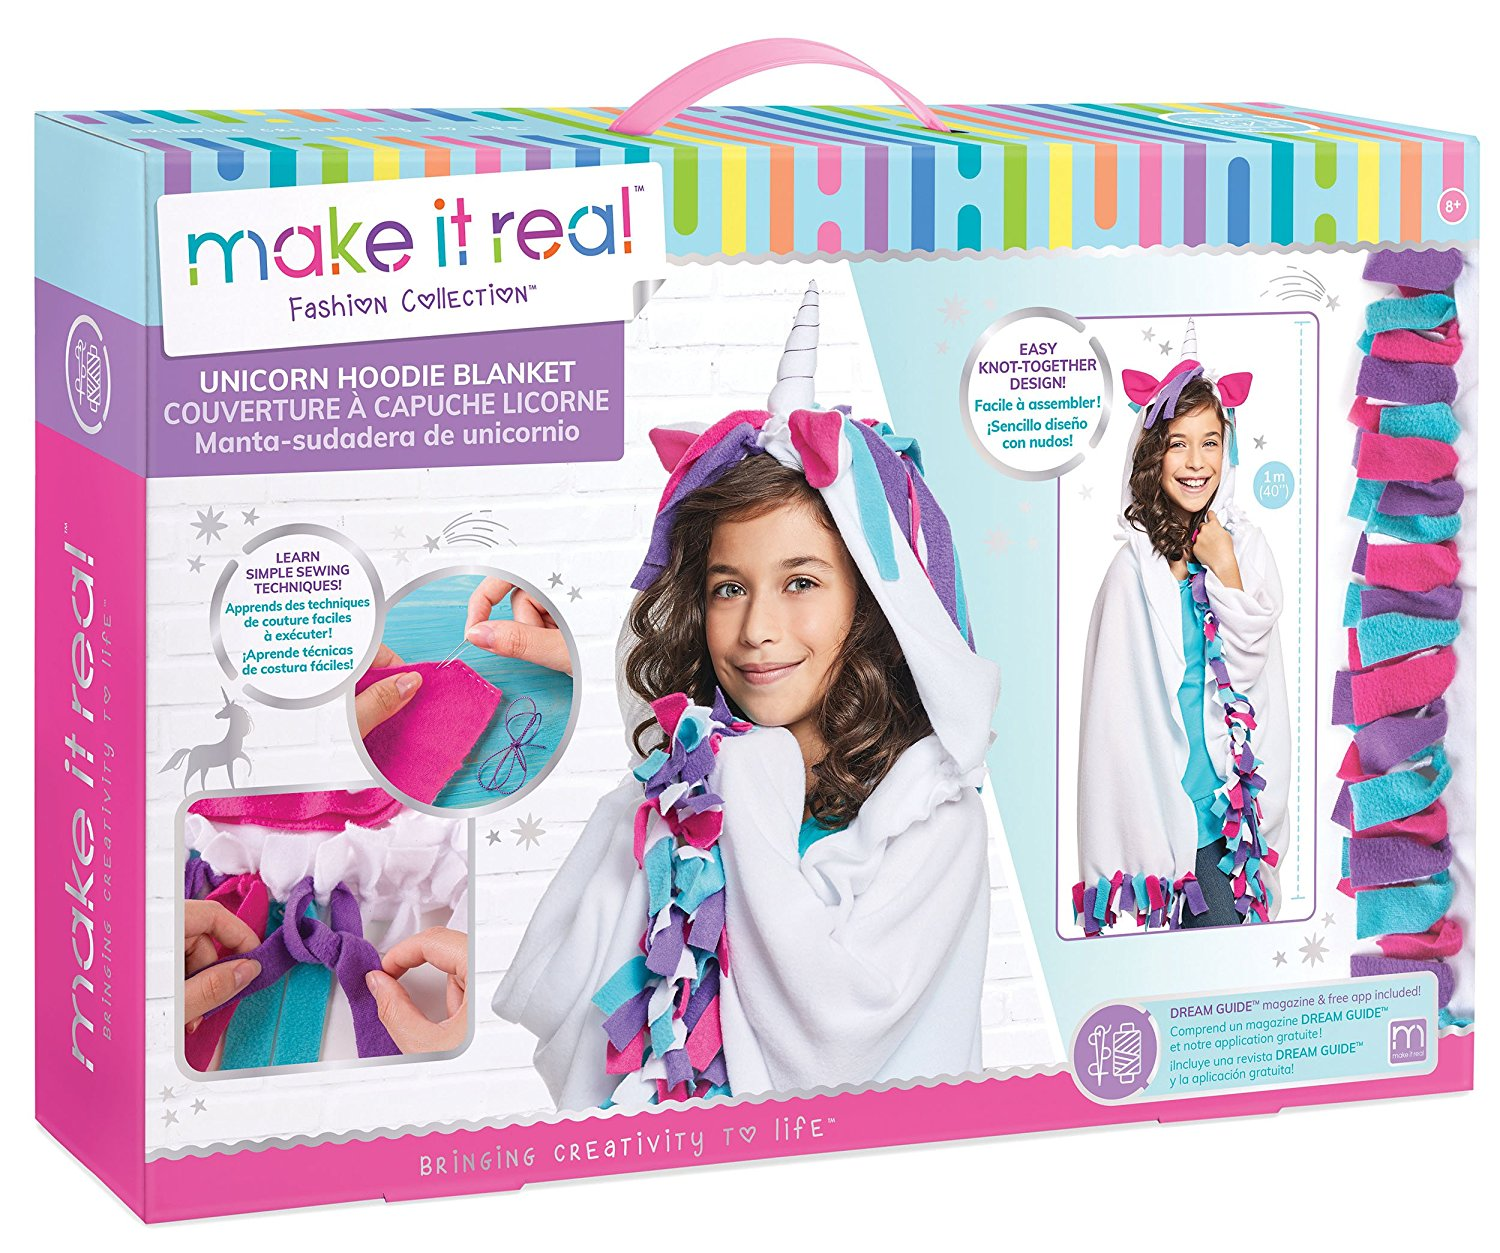 Make It Real Unicorn Hoodie Blanket. Wearable Unicorn Hooded Blanket Arts and Crafts Kit for Girls.